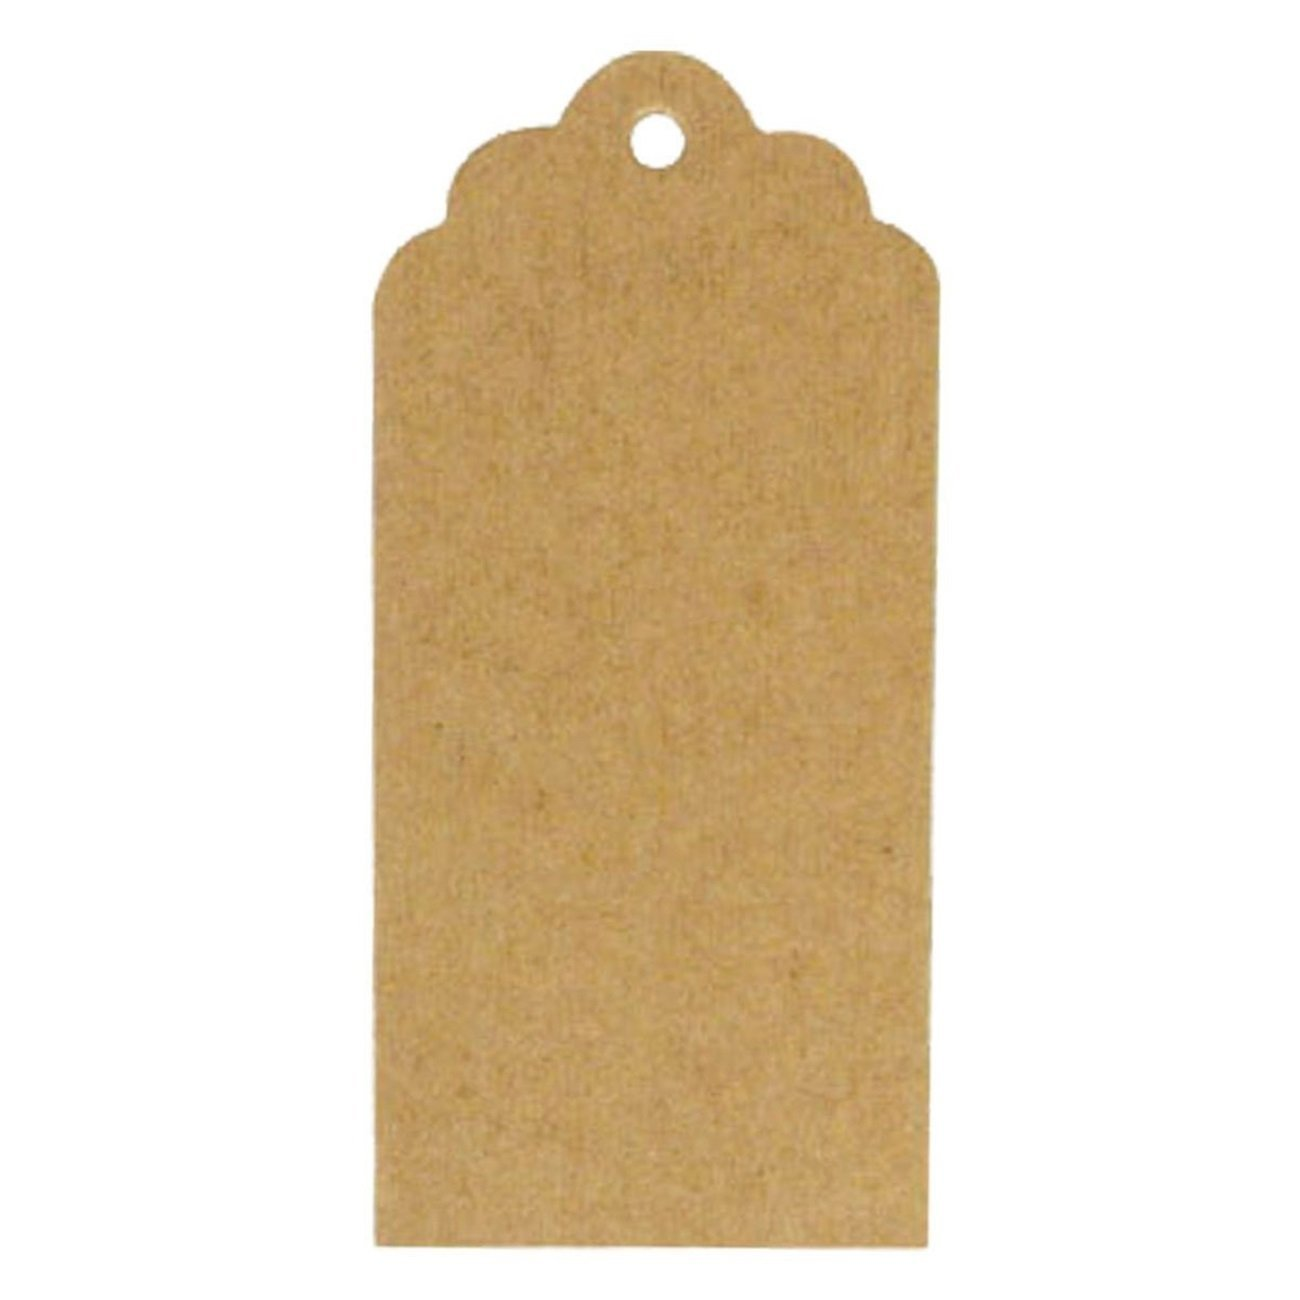 Wrapables 50 Gift Tags Kraft Hang Tags with Free Cut Strings for Gifts, Crafts & Price... by